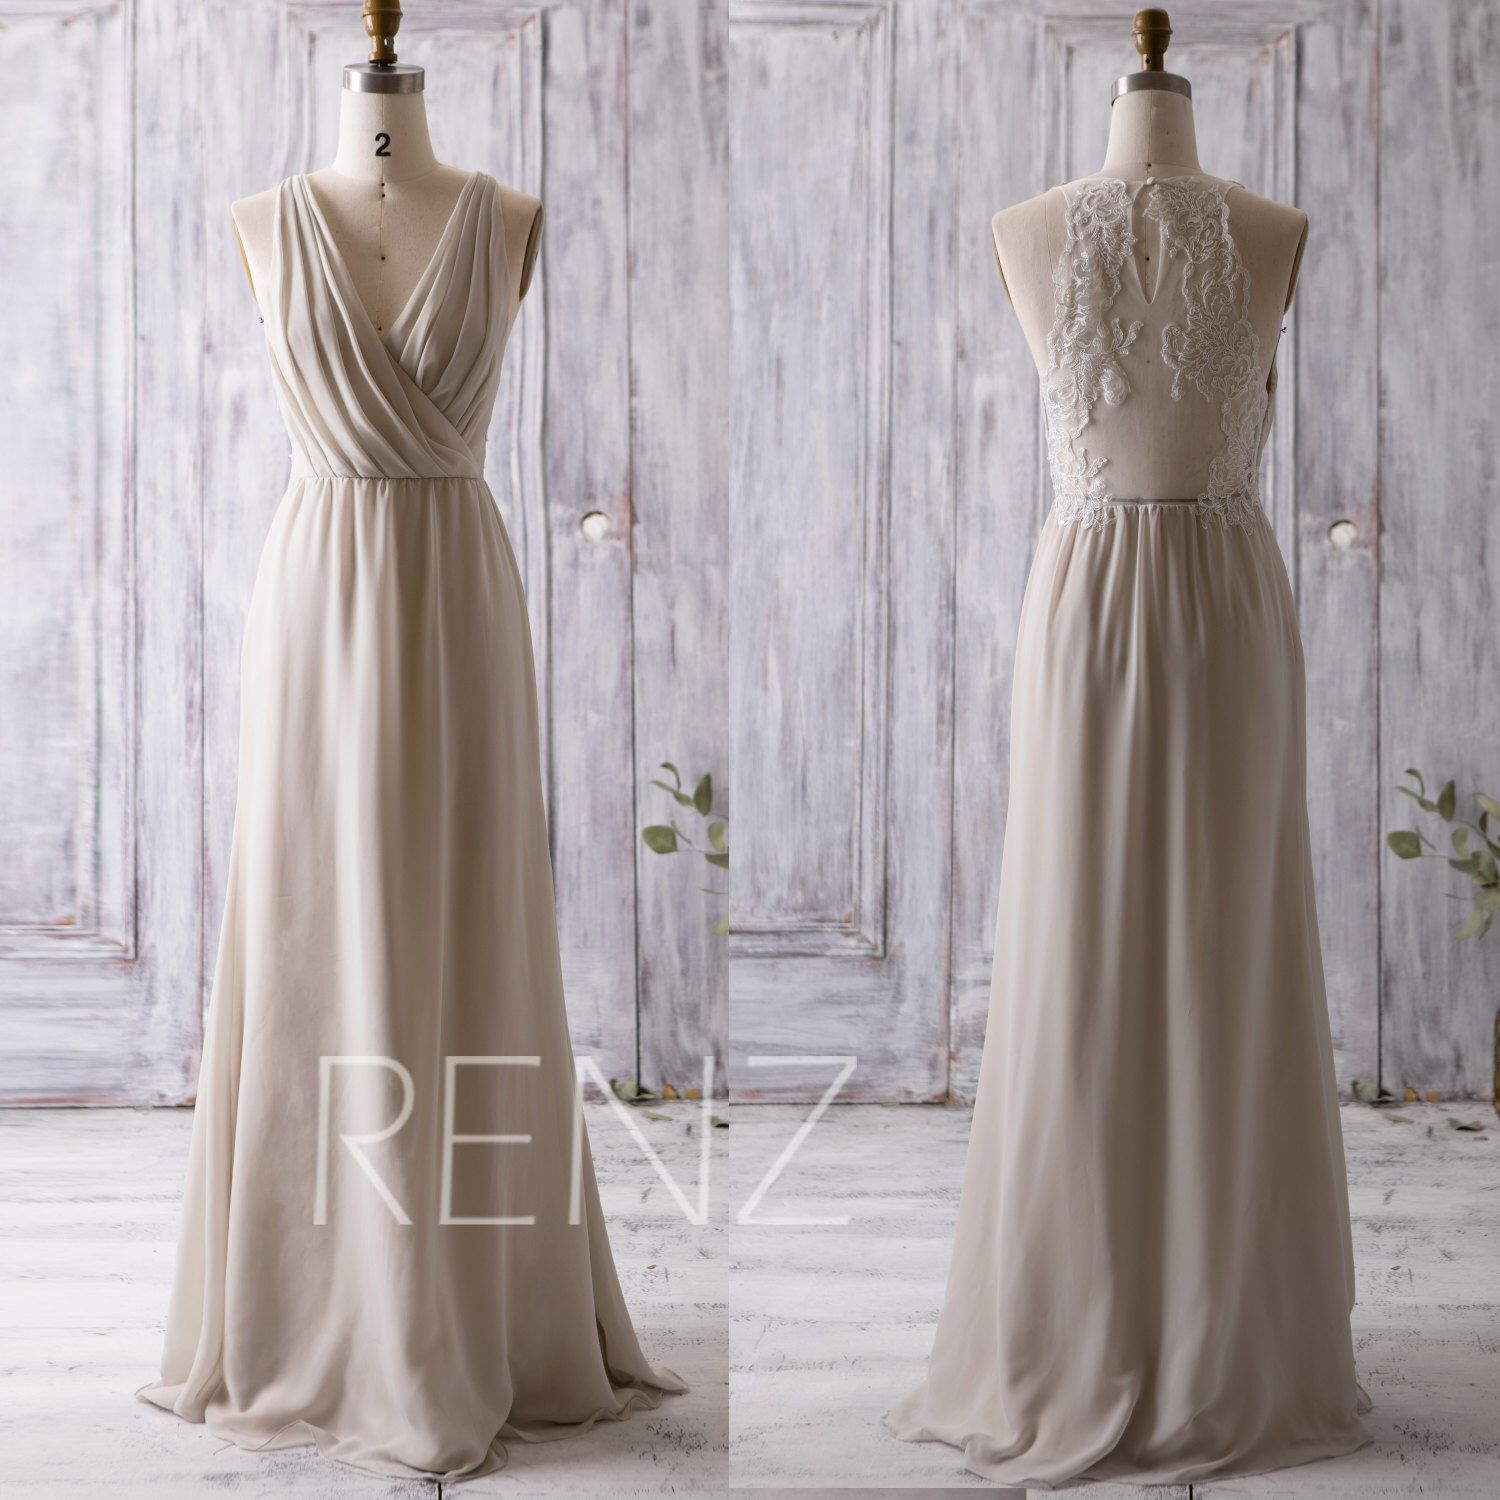 Cream/Beige Bridesmaid Dress Long, Ruched V Neck Wedding ...